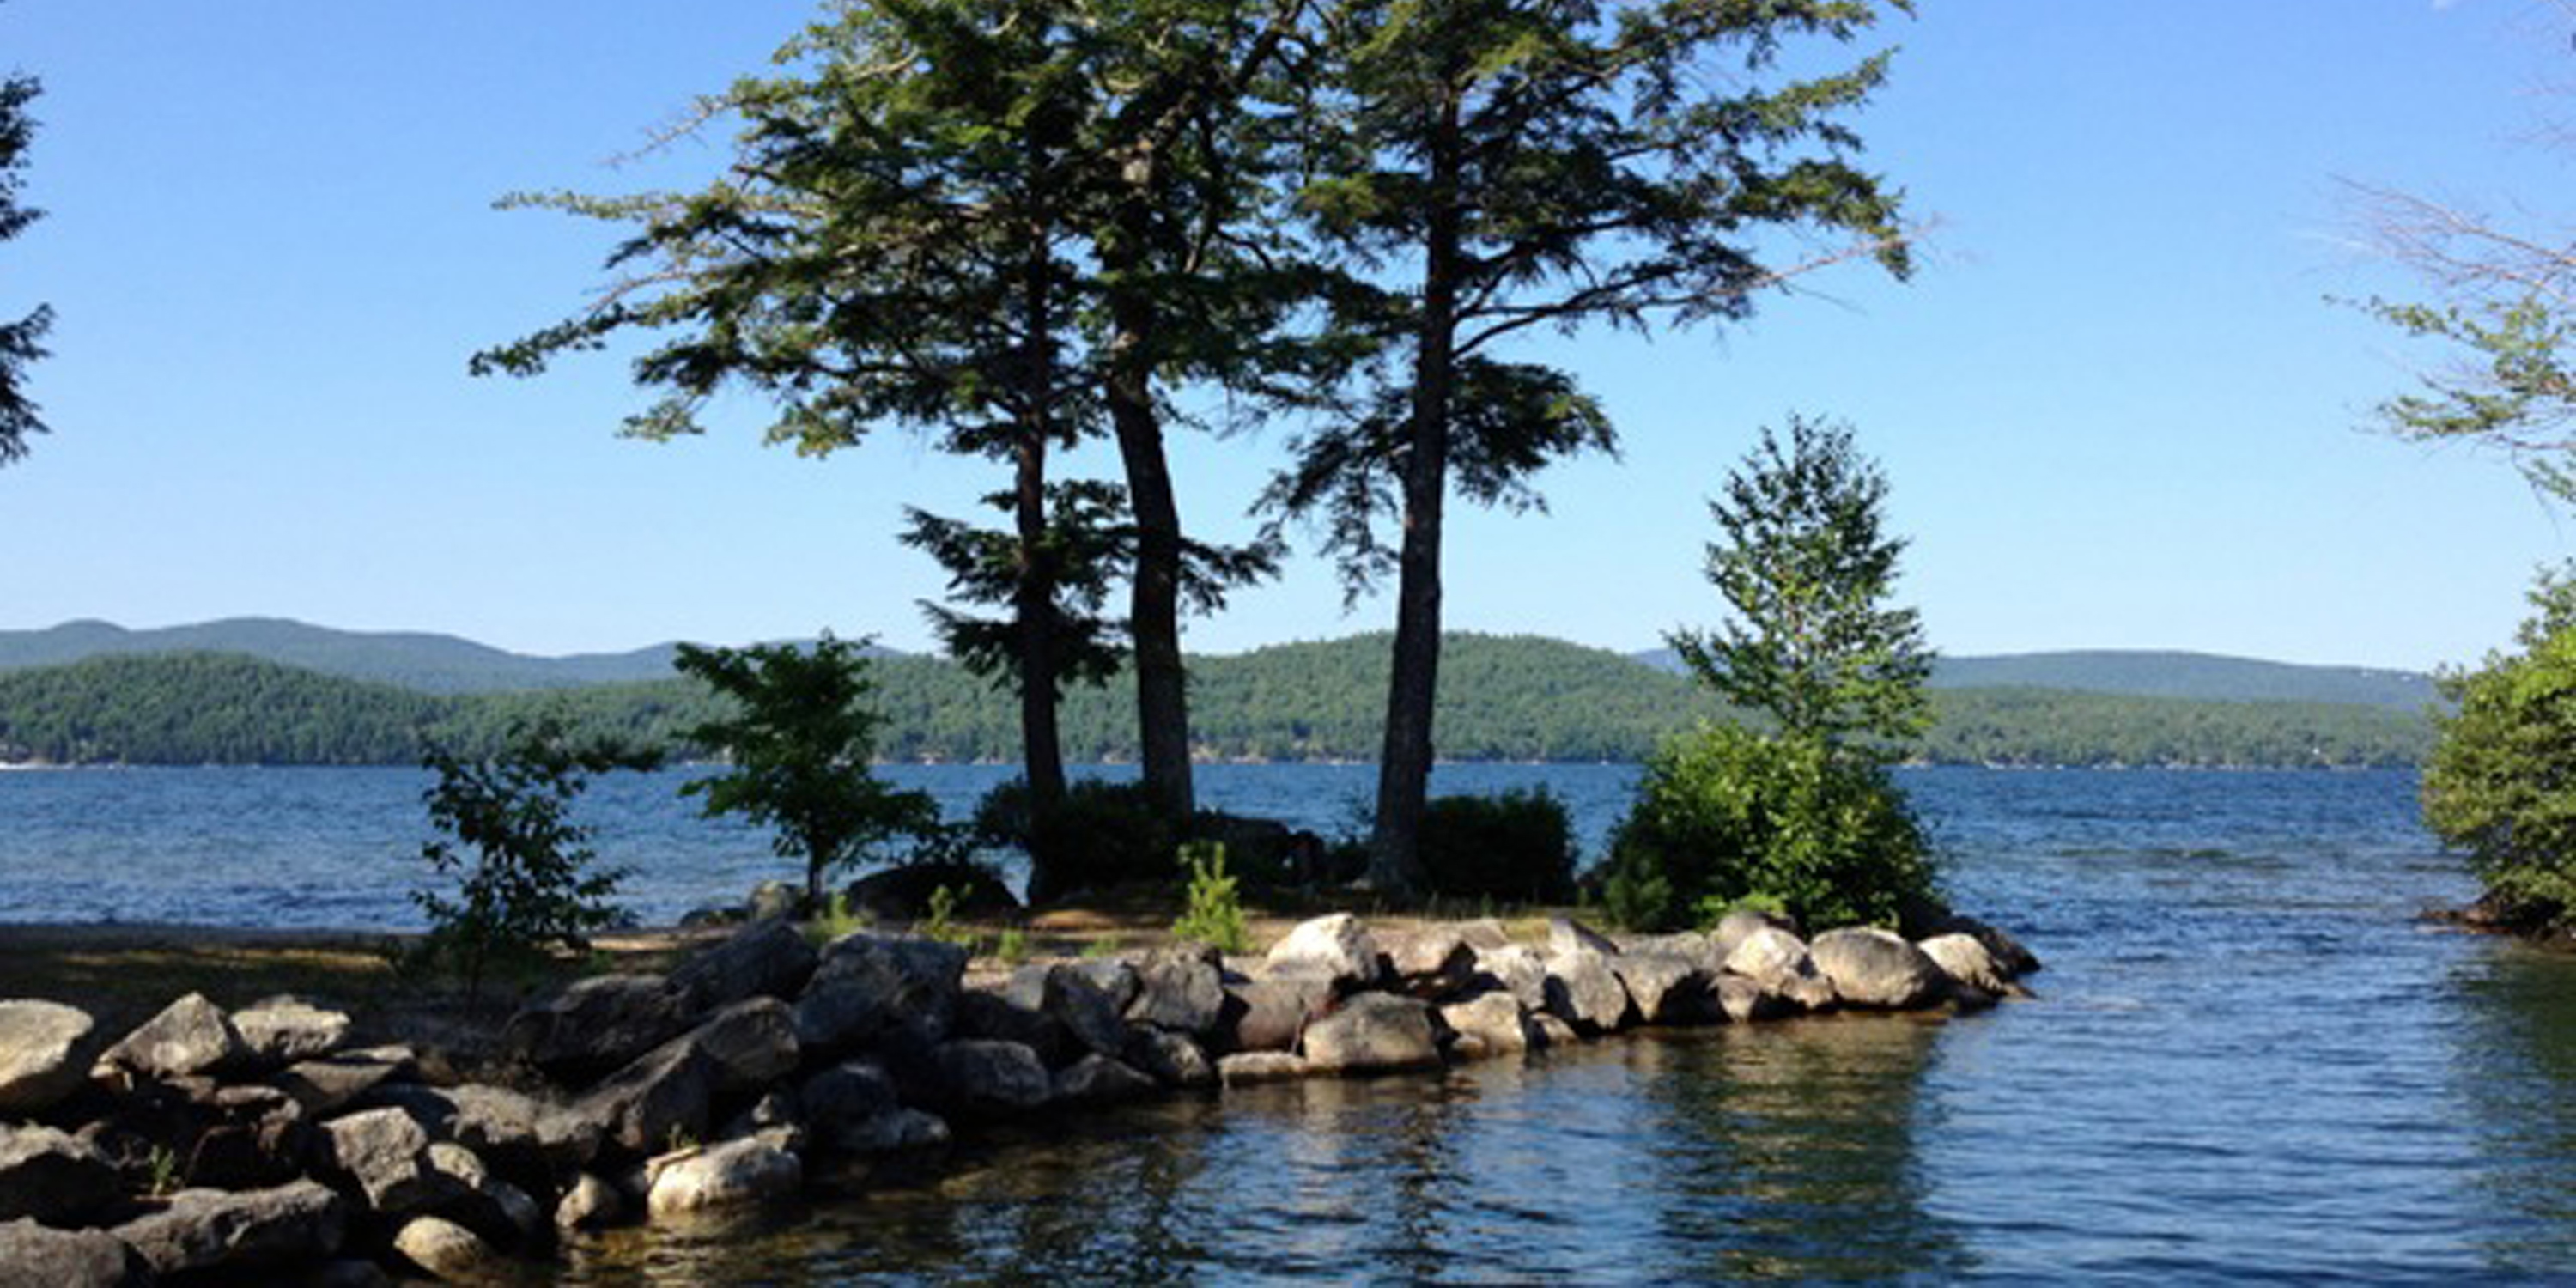 enlarge grant week fishing while img did cabins click winnipesaukee to at a steve cy of lake lot